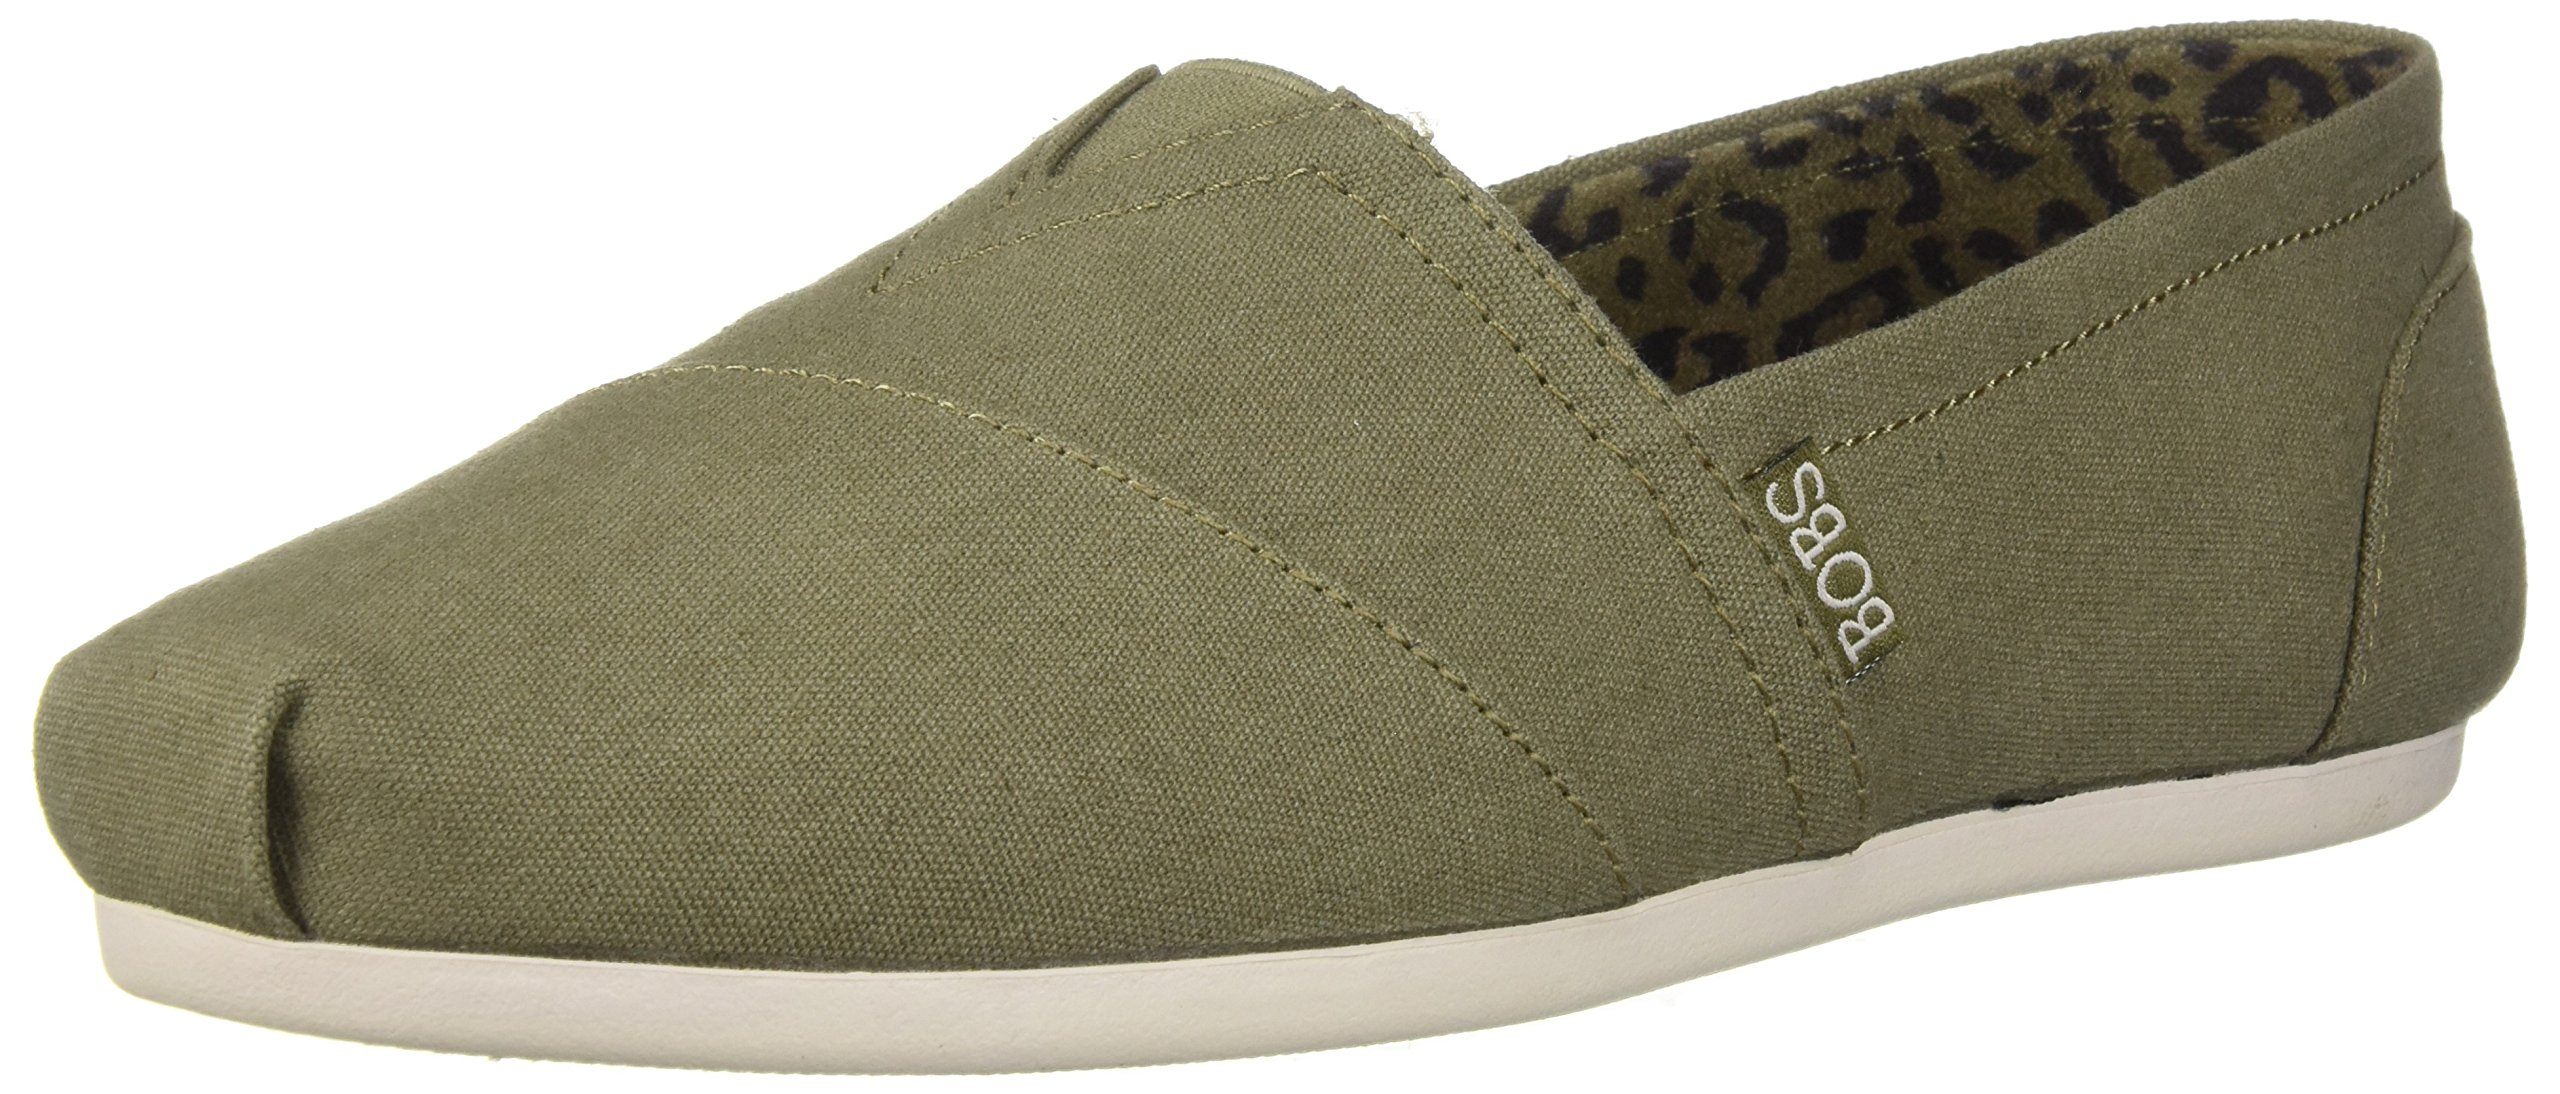 Skechers BOBS Women's Bobs Plush-Peace and Love Sneaker, Olive, 9 M US